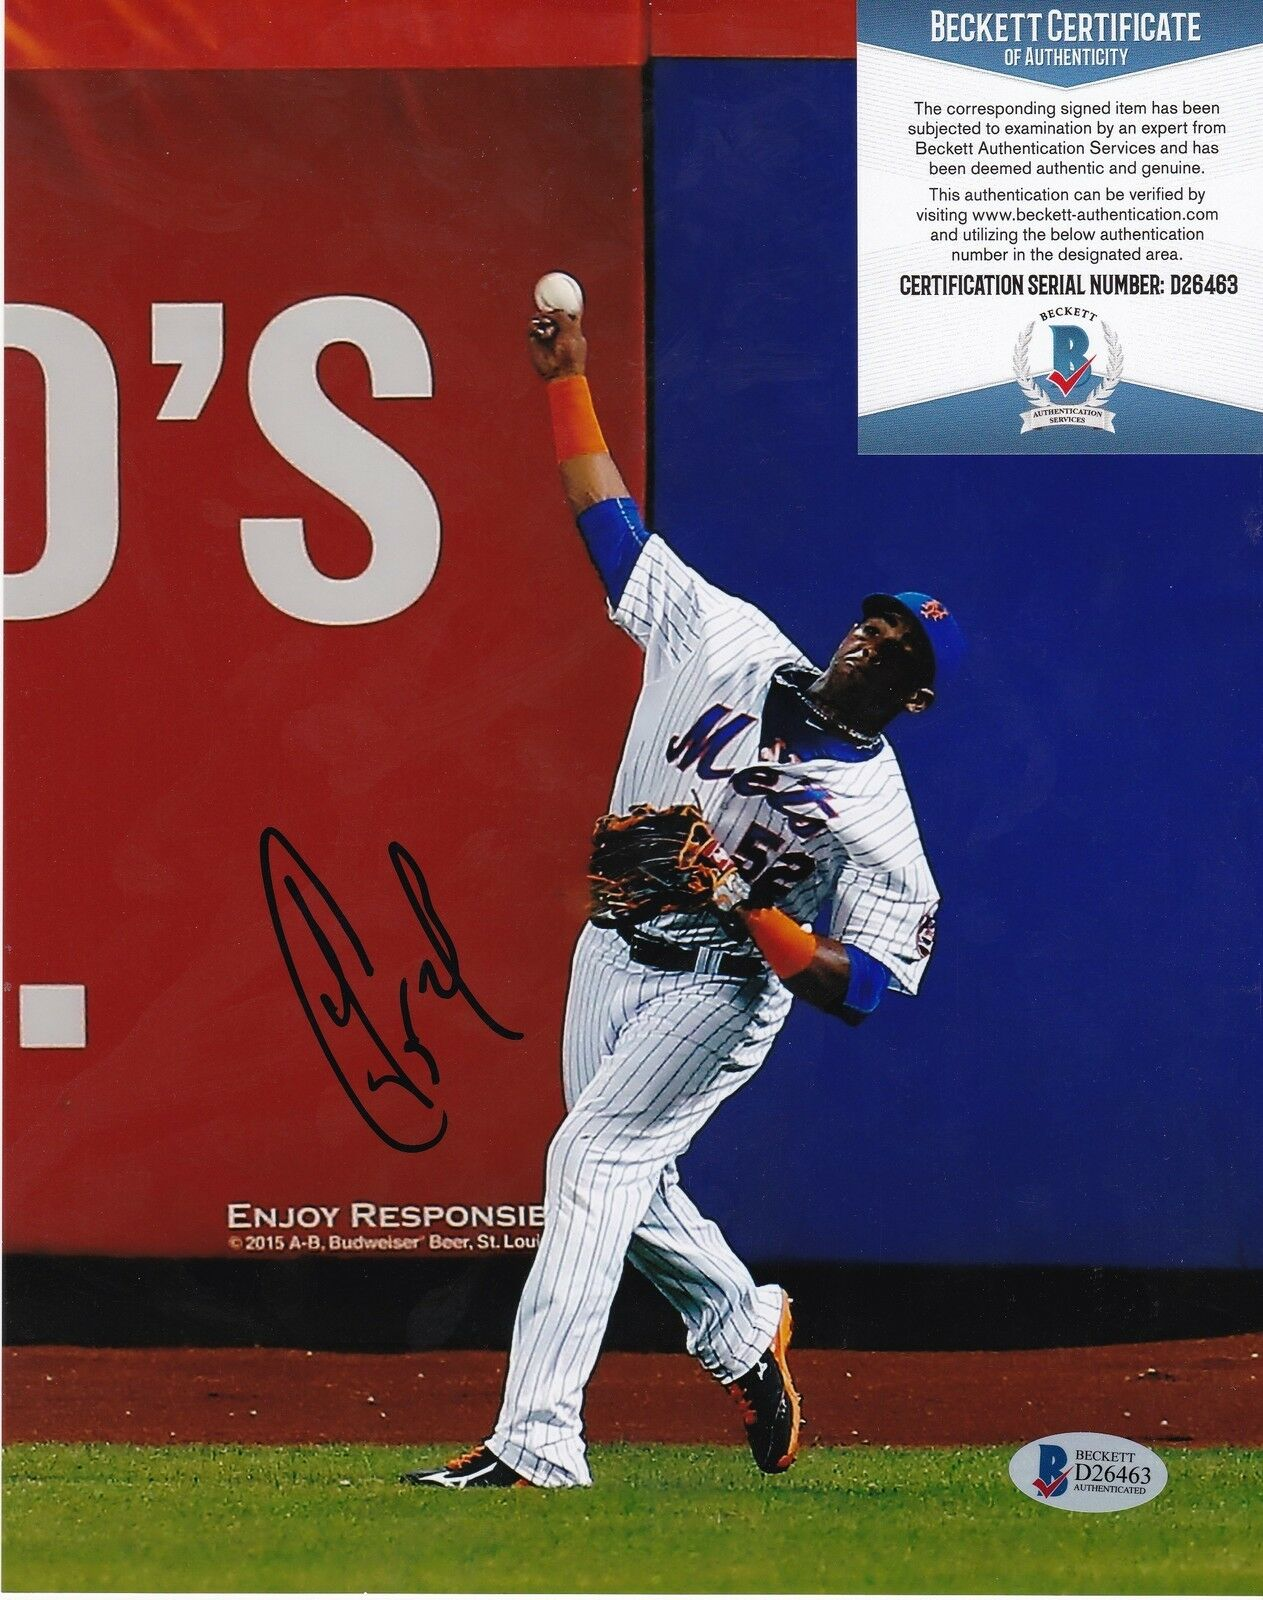 Yoenis Cespedes Nuevo York Mets Beckett Authenticated Acción Firmada